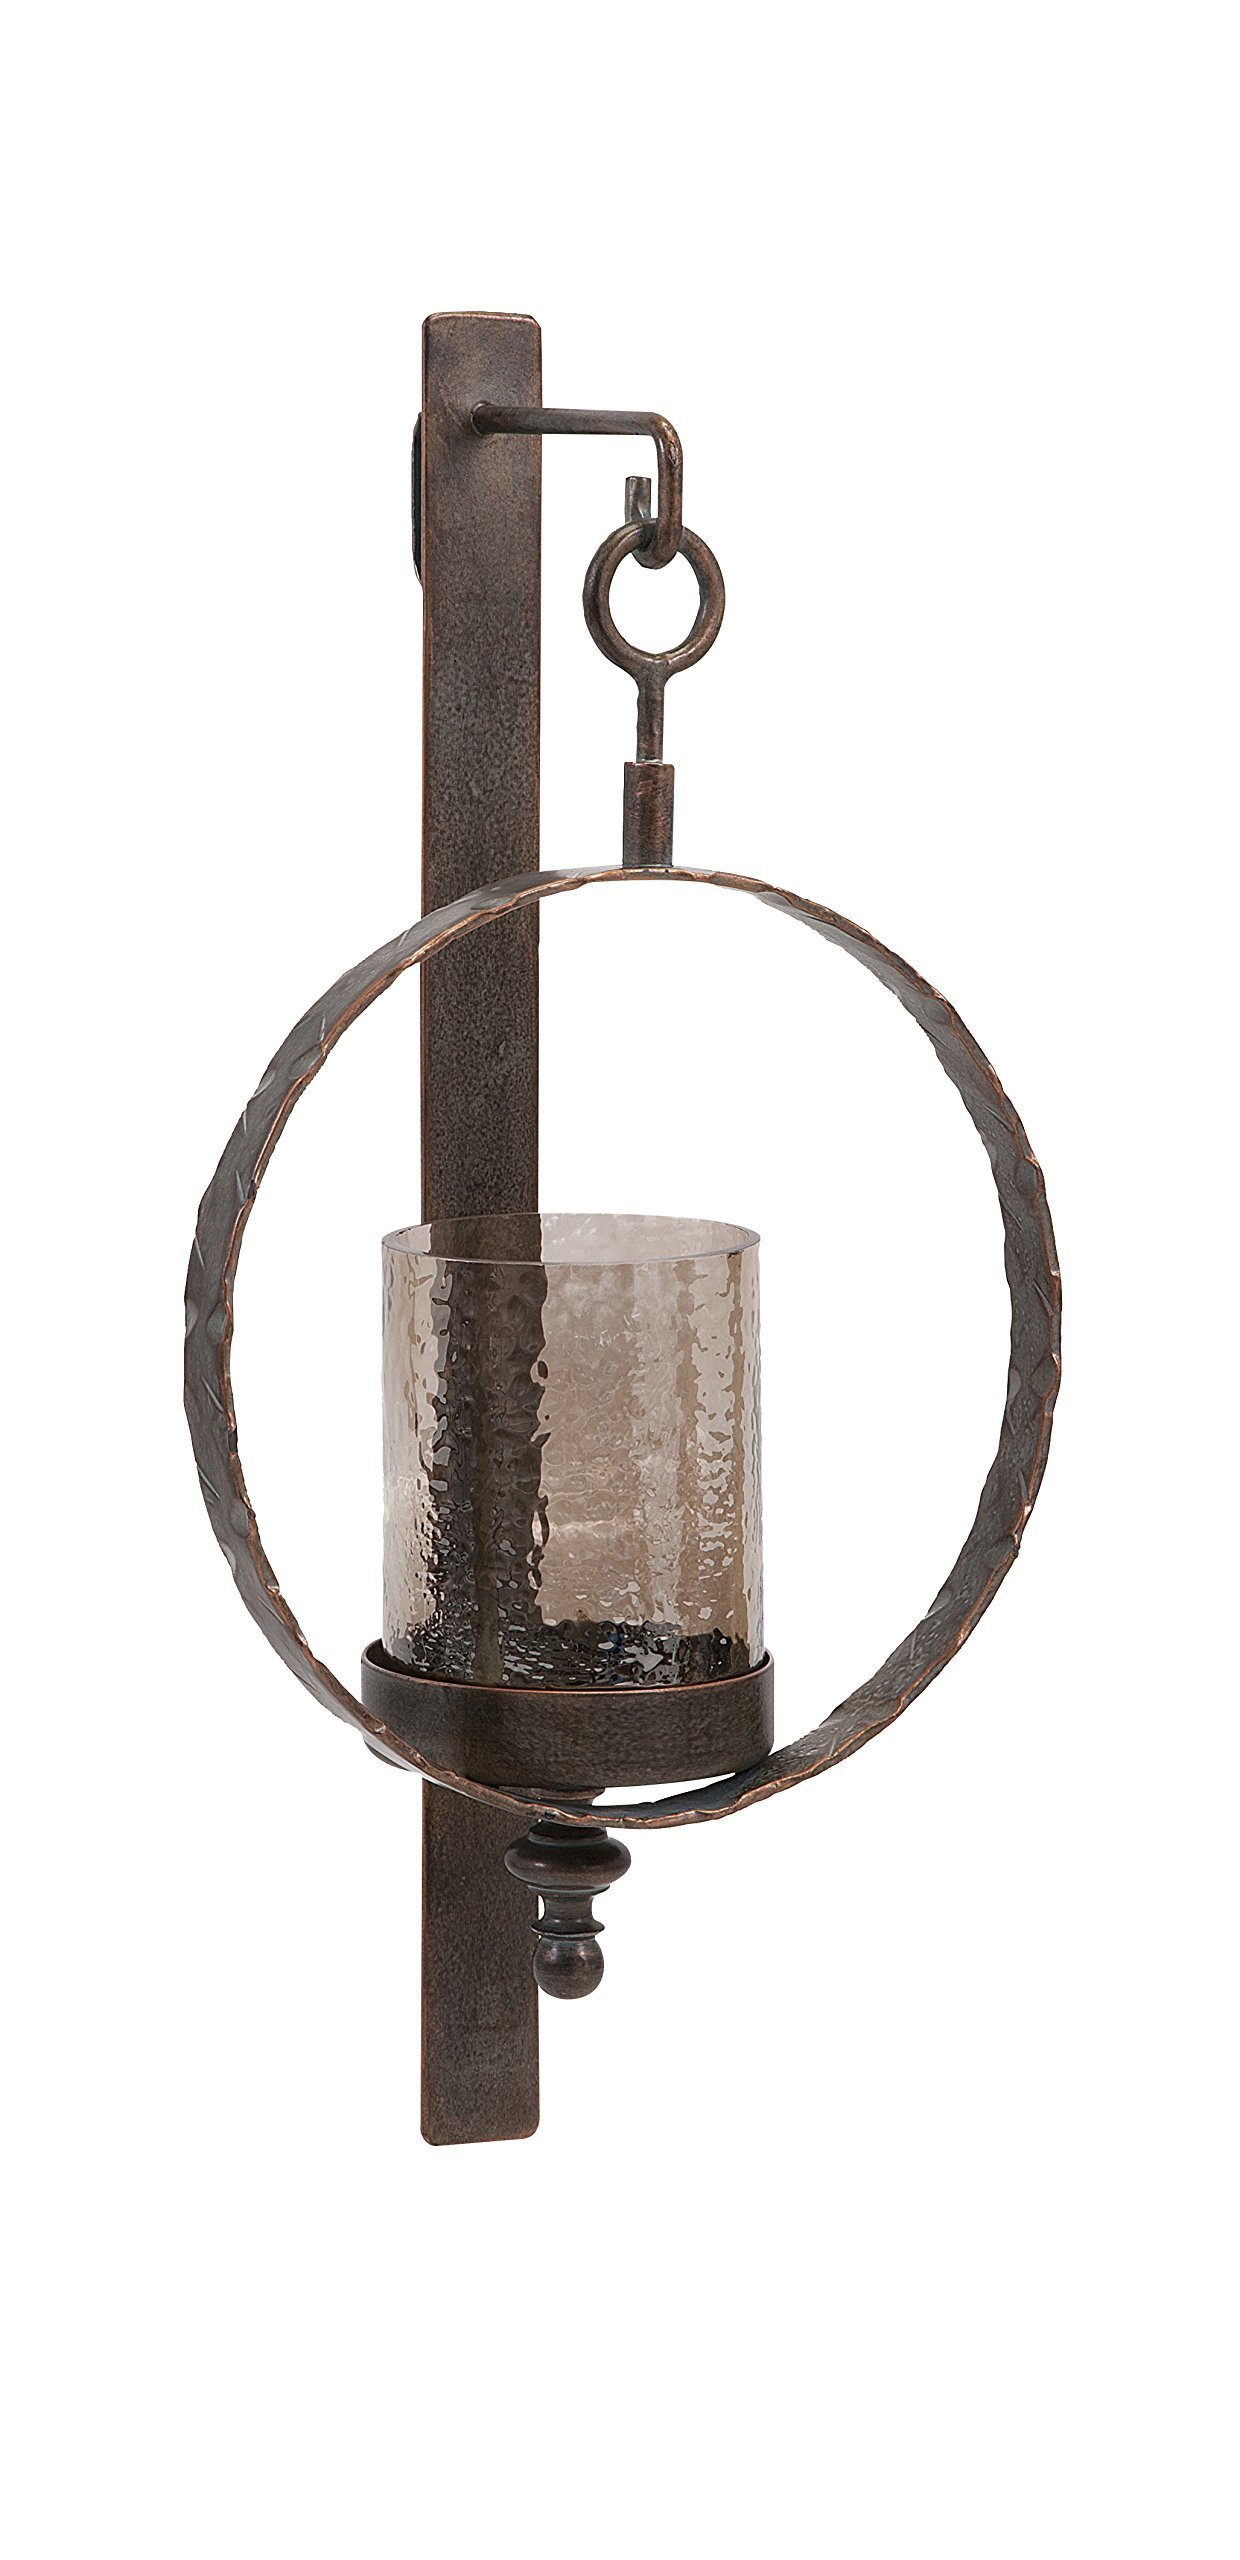 IMAX 20274 Circle Wall Sconce - Candle Holder for Home, Hotel, Reception Areas. Metal Wall Candle Sconce with Crackled Glass Hurricane. Decor Accessories